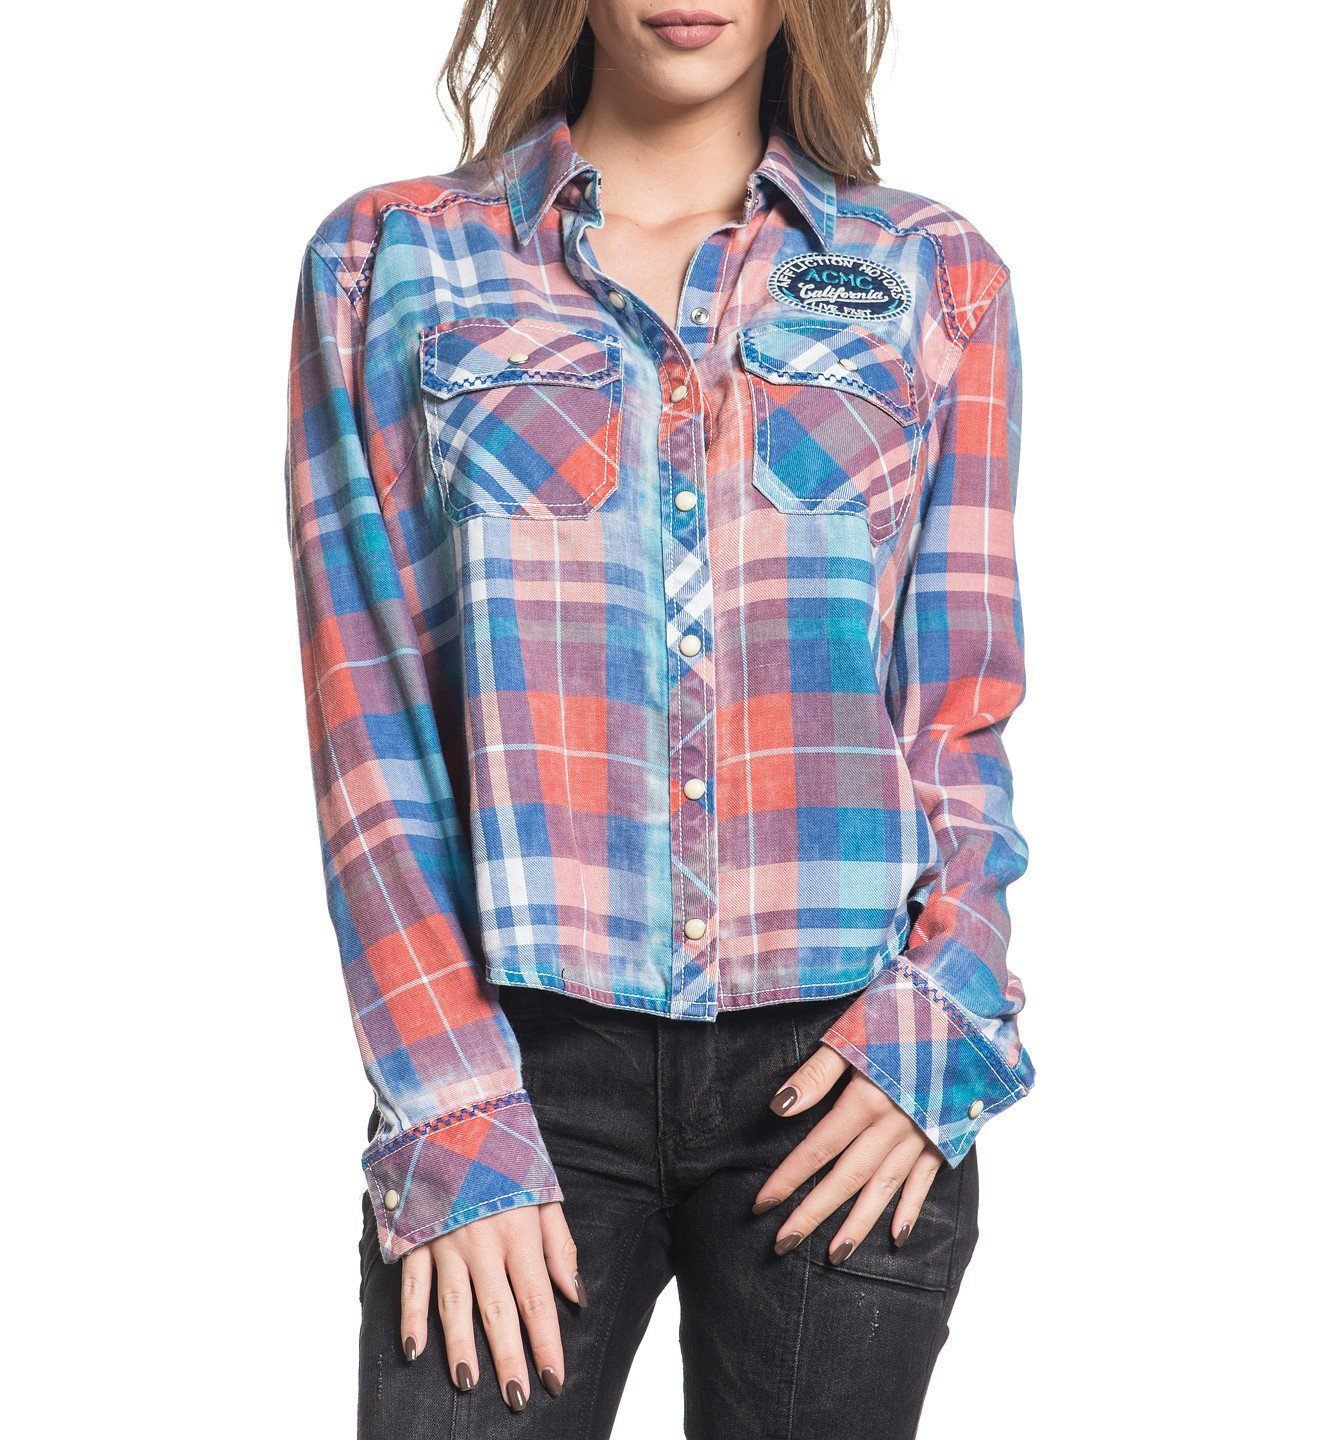 Sag Harbor - Womens Button Down Tops - Affliction Clothing